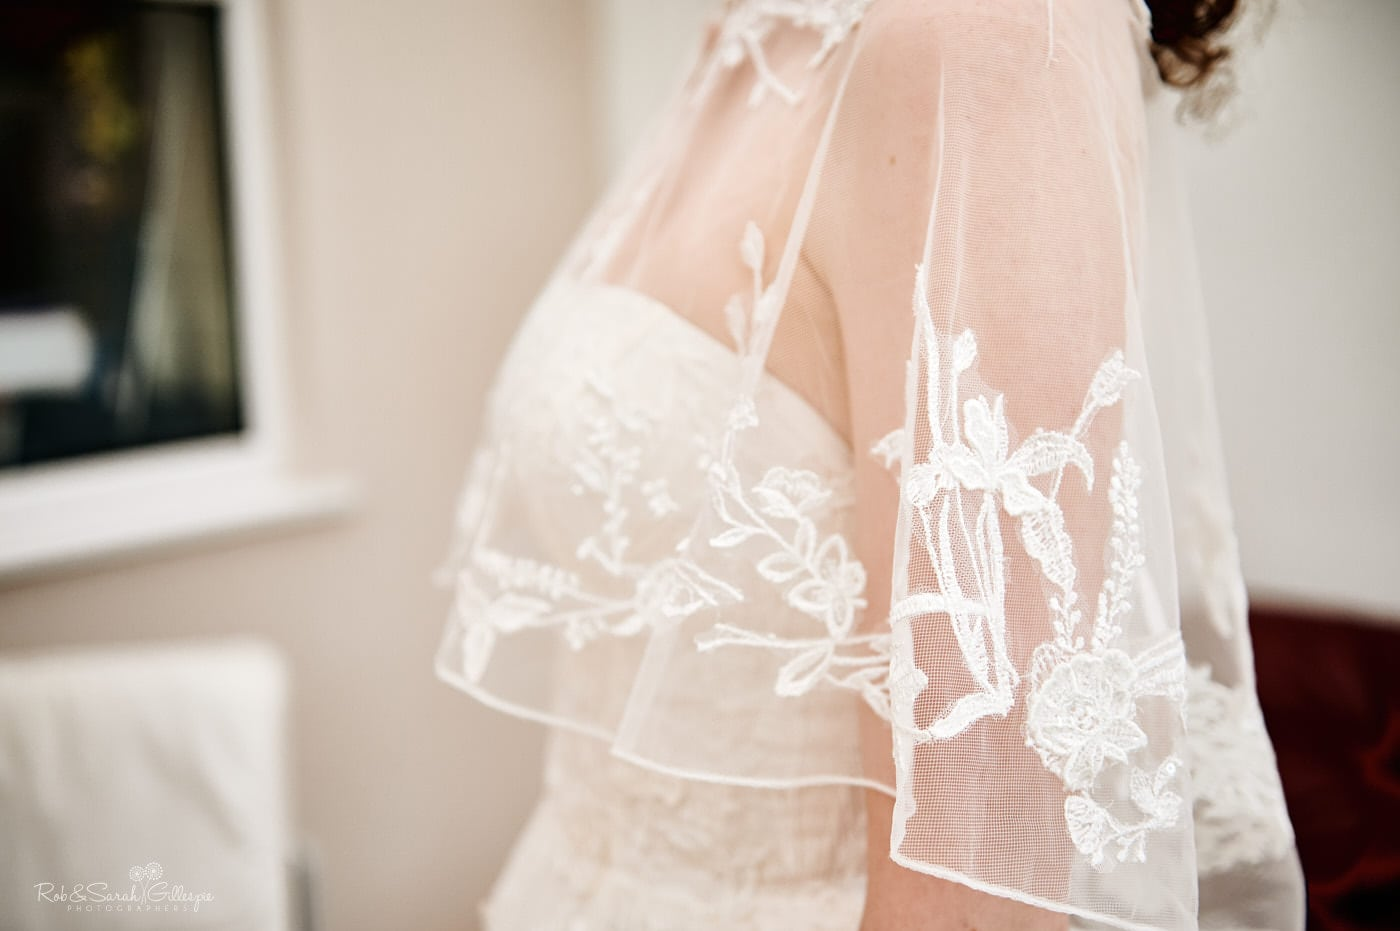 Detailf of bride's wedding dress